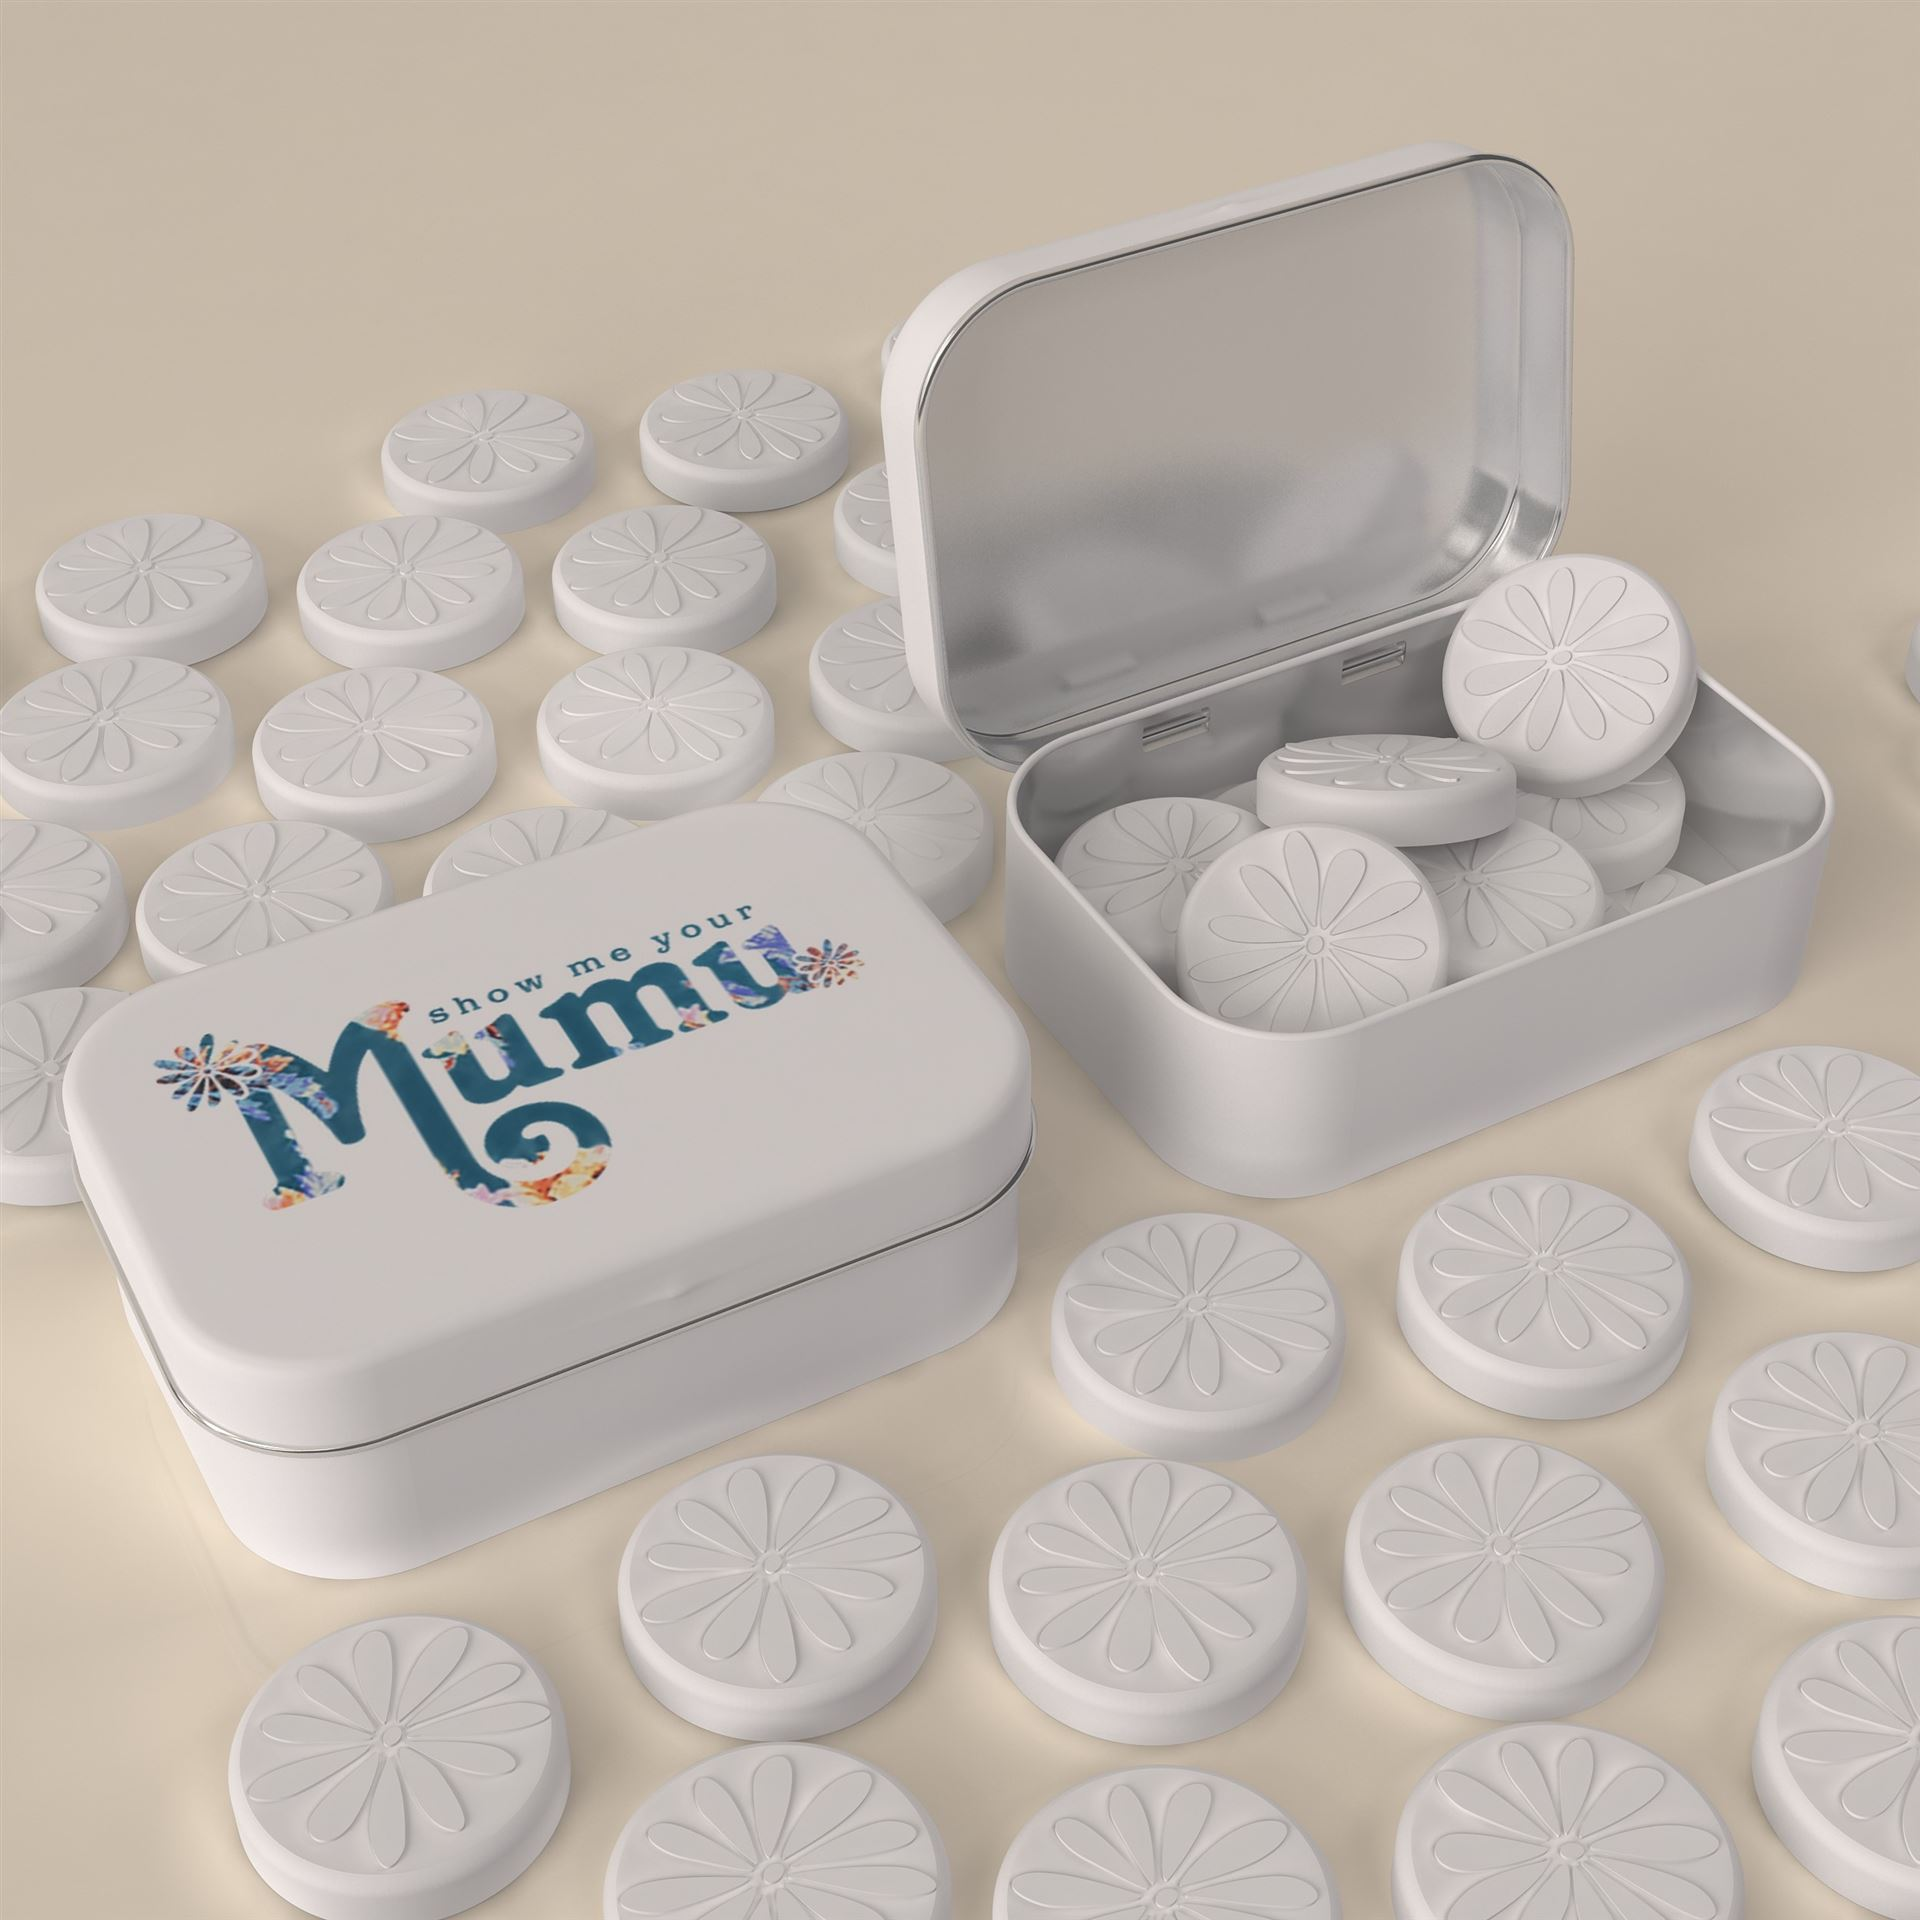 WORLD PREMIERE - LOGO SHAPED & EMBOSSED MINTS - FREE EU SHIPPING